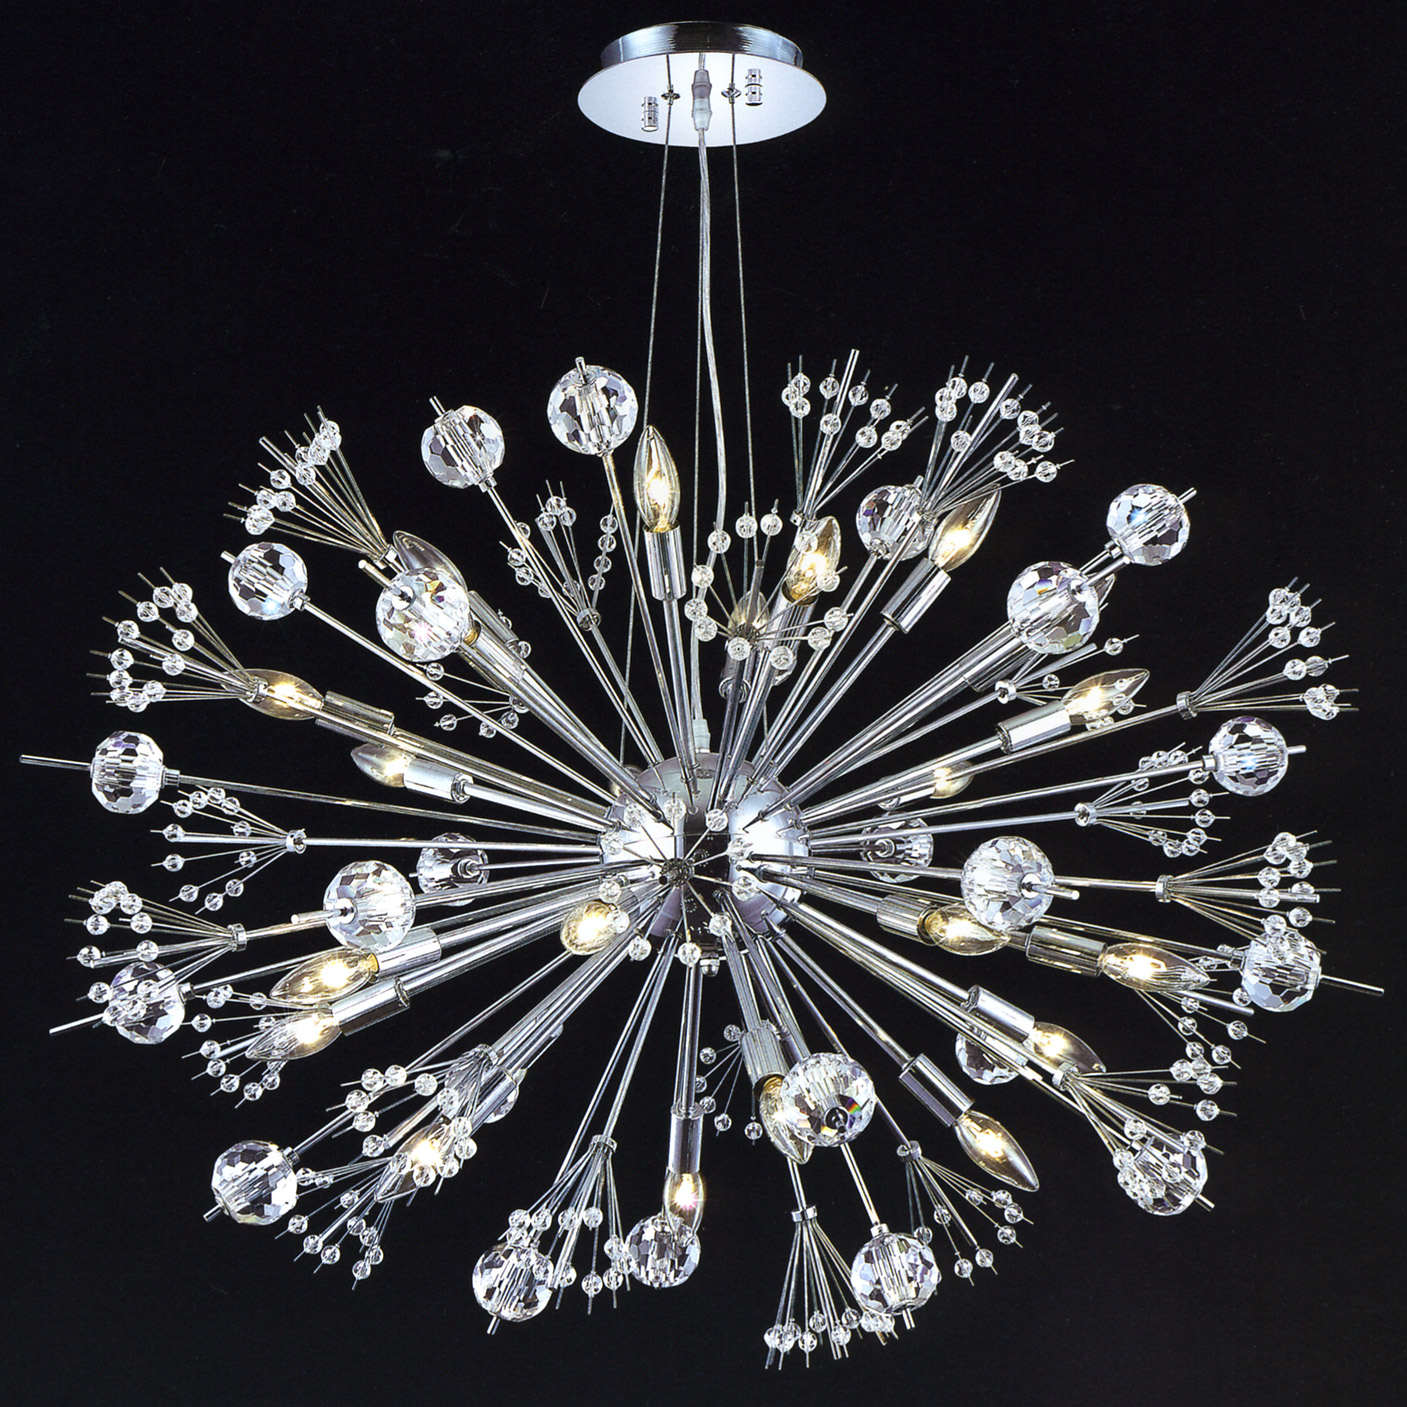 Elegant Lighting 3400d36c Ec Crystal Cyclone Chandelier